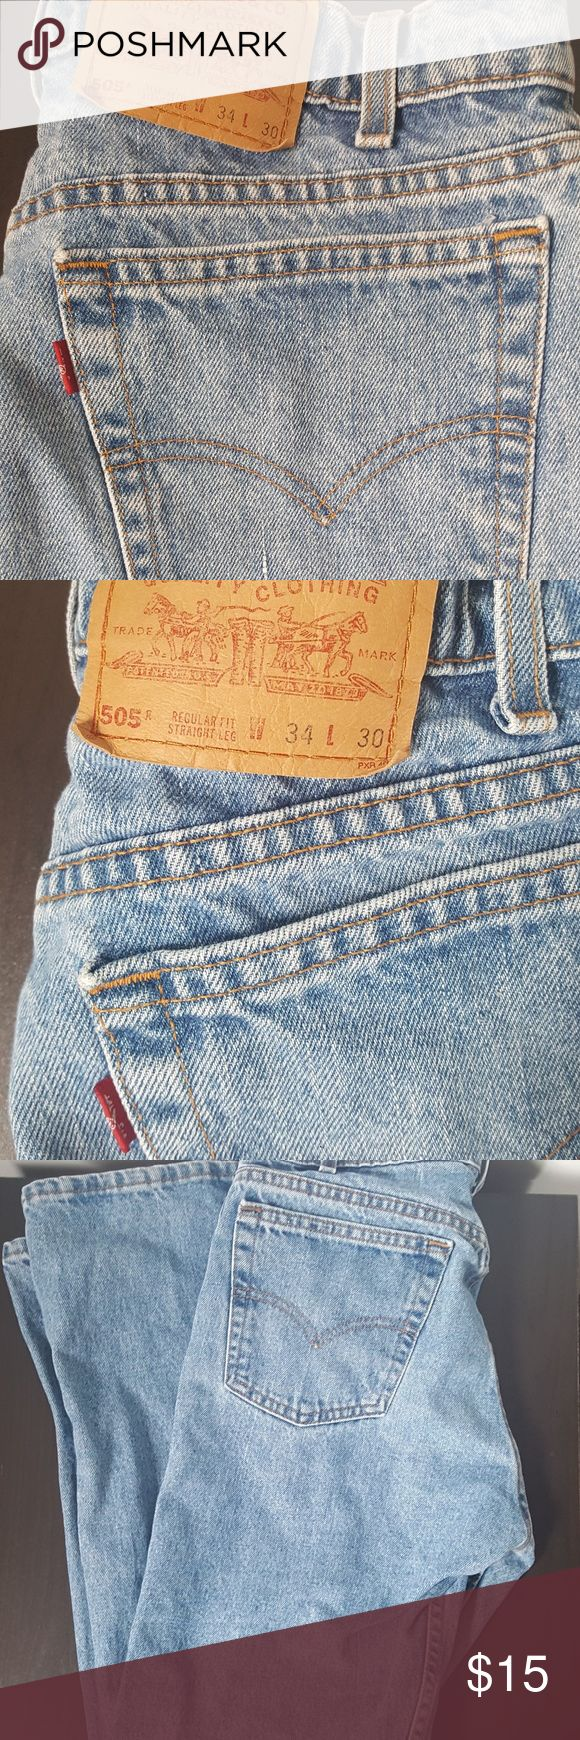 LEVIS 505 Jeans RED TAB Reg Straight Leg W34 X L30 Pre-Owned in excellent condition 505's W 34 L 30  Red Tab  Regular Fit Straight Leg Levi's Jeans Straight